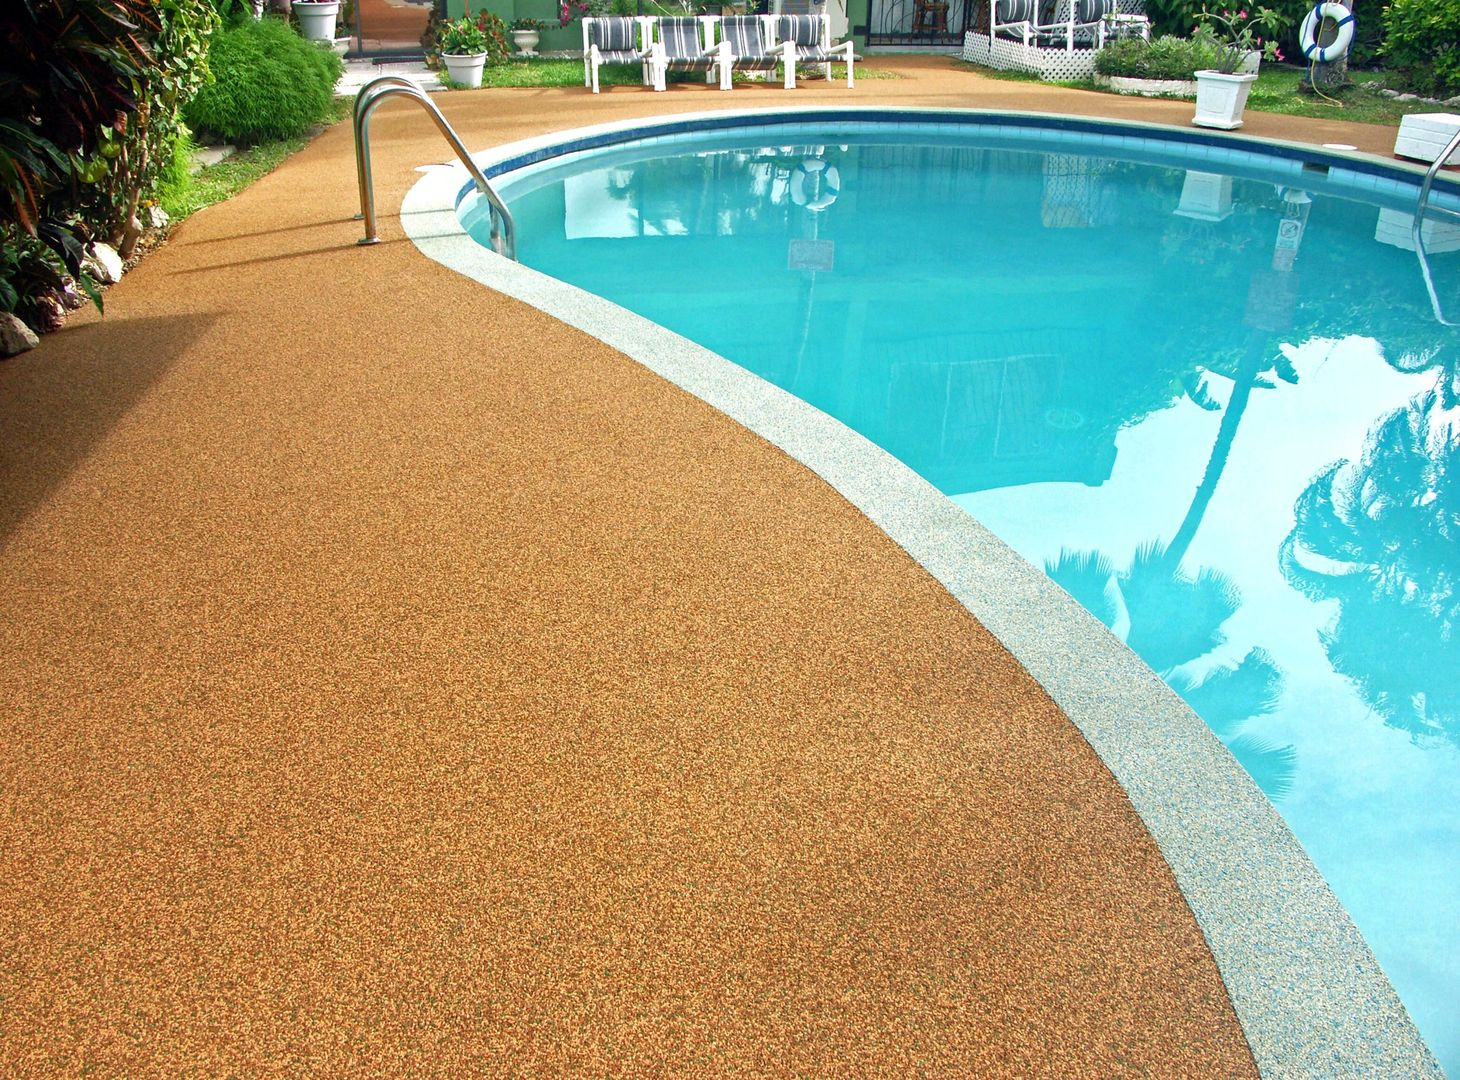 Resurface Inc In Barbados Has Marvelous Solutions For Your Walkways And More Using Recycled Materials Pool Deck Pool Outdoor Decor